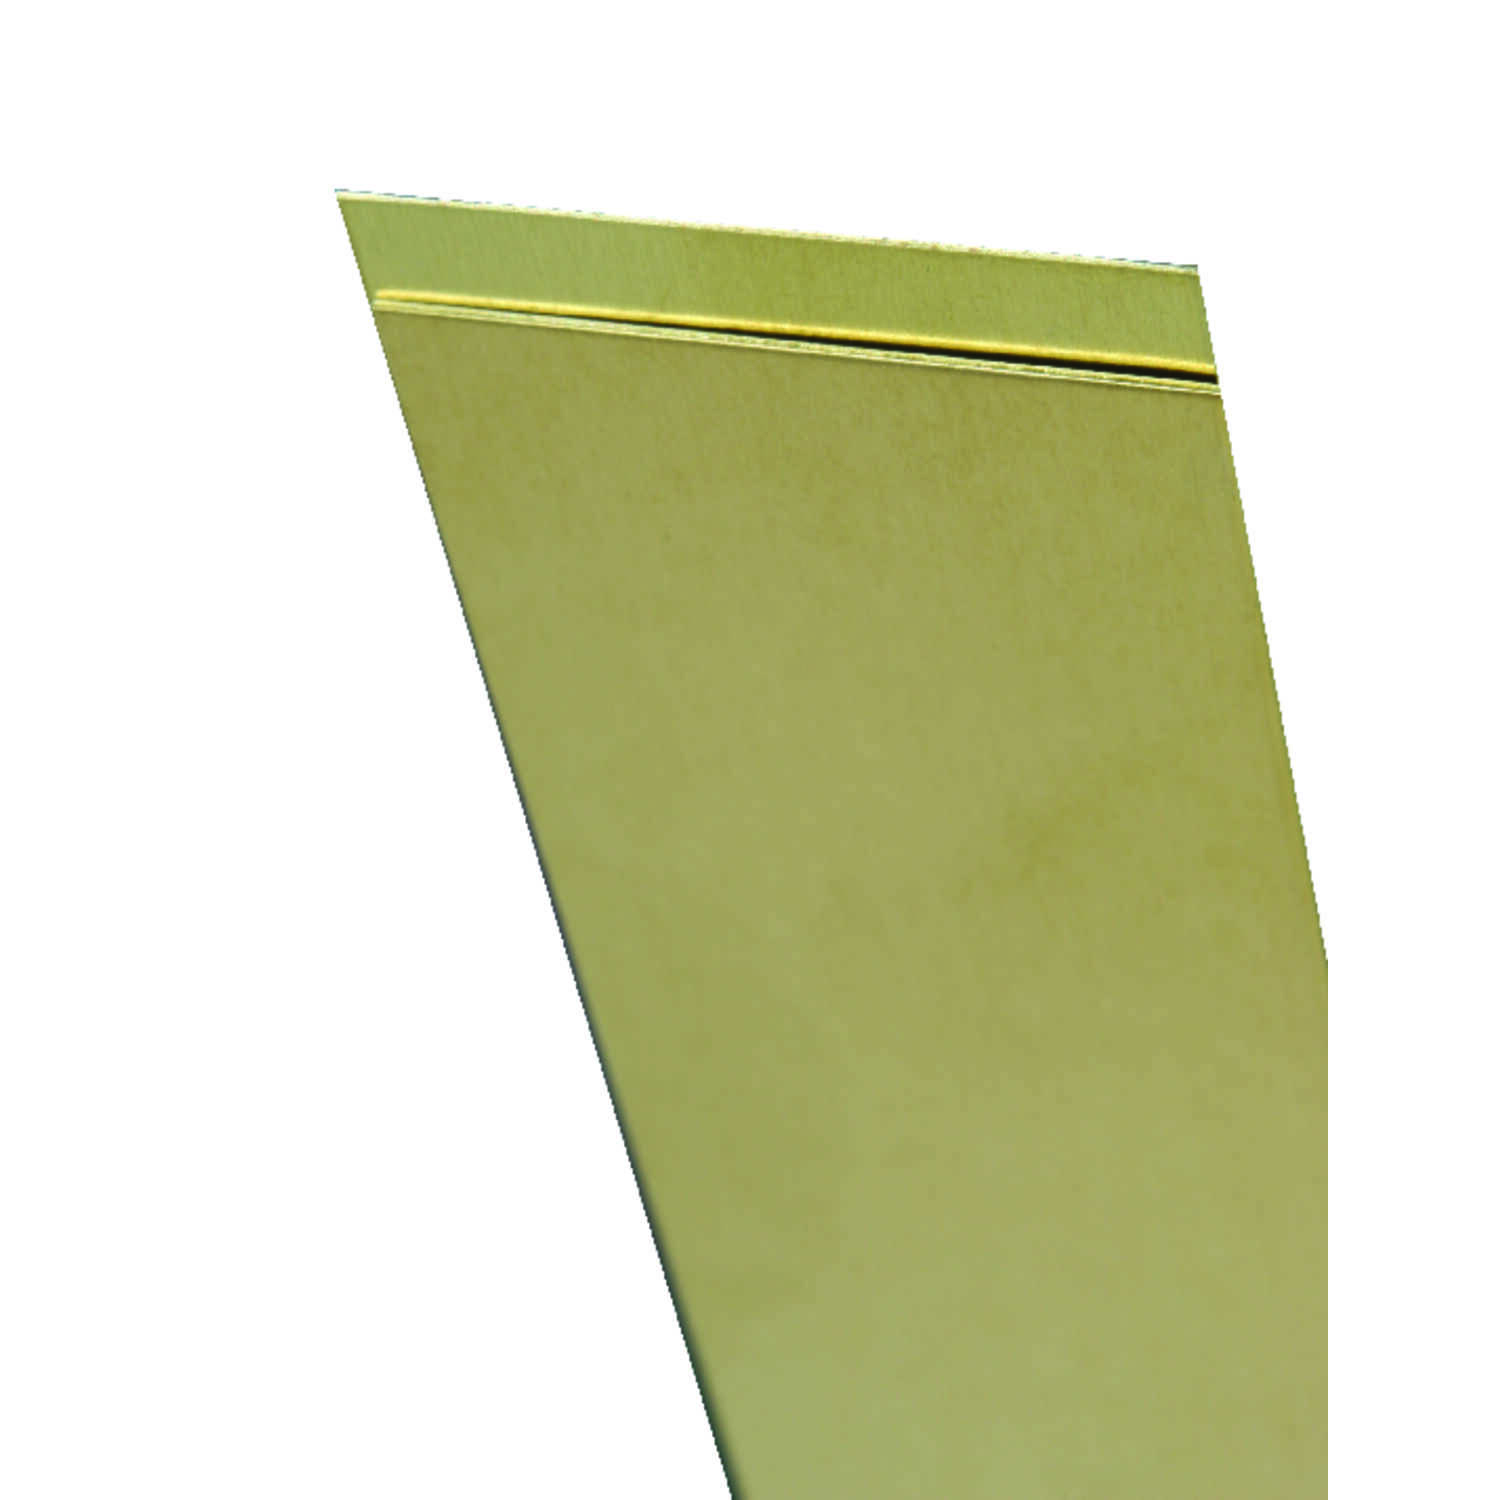 K&S  0.032 in.  x 4 in. W x 10 in. L Brass  Sheet Metal